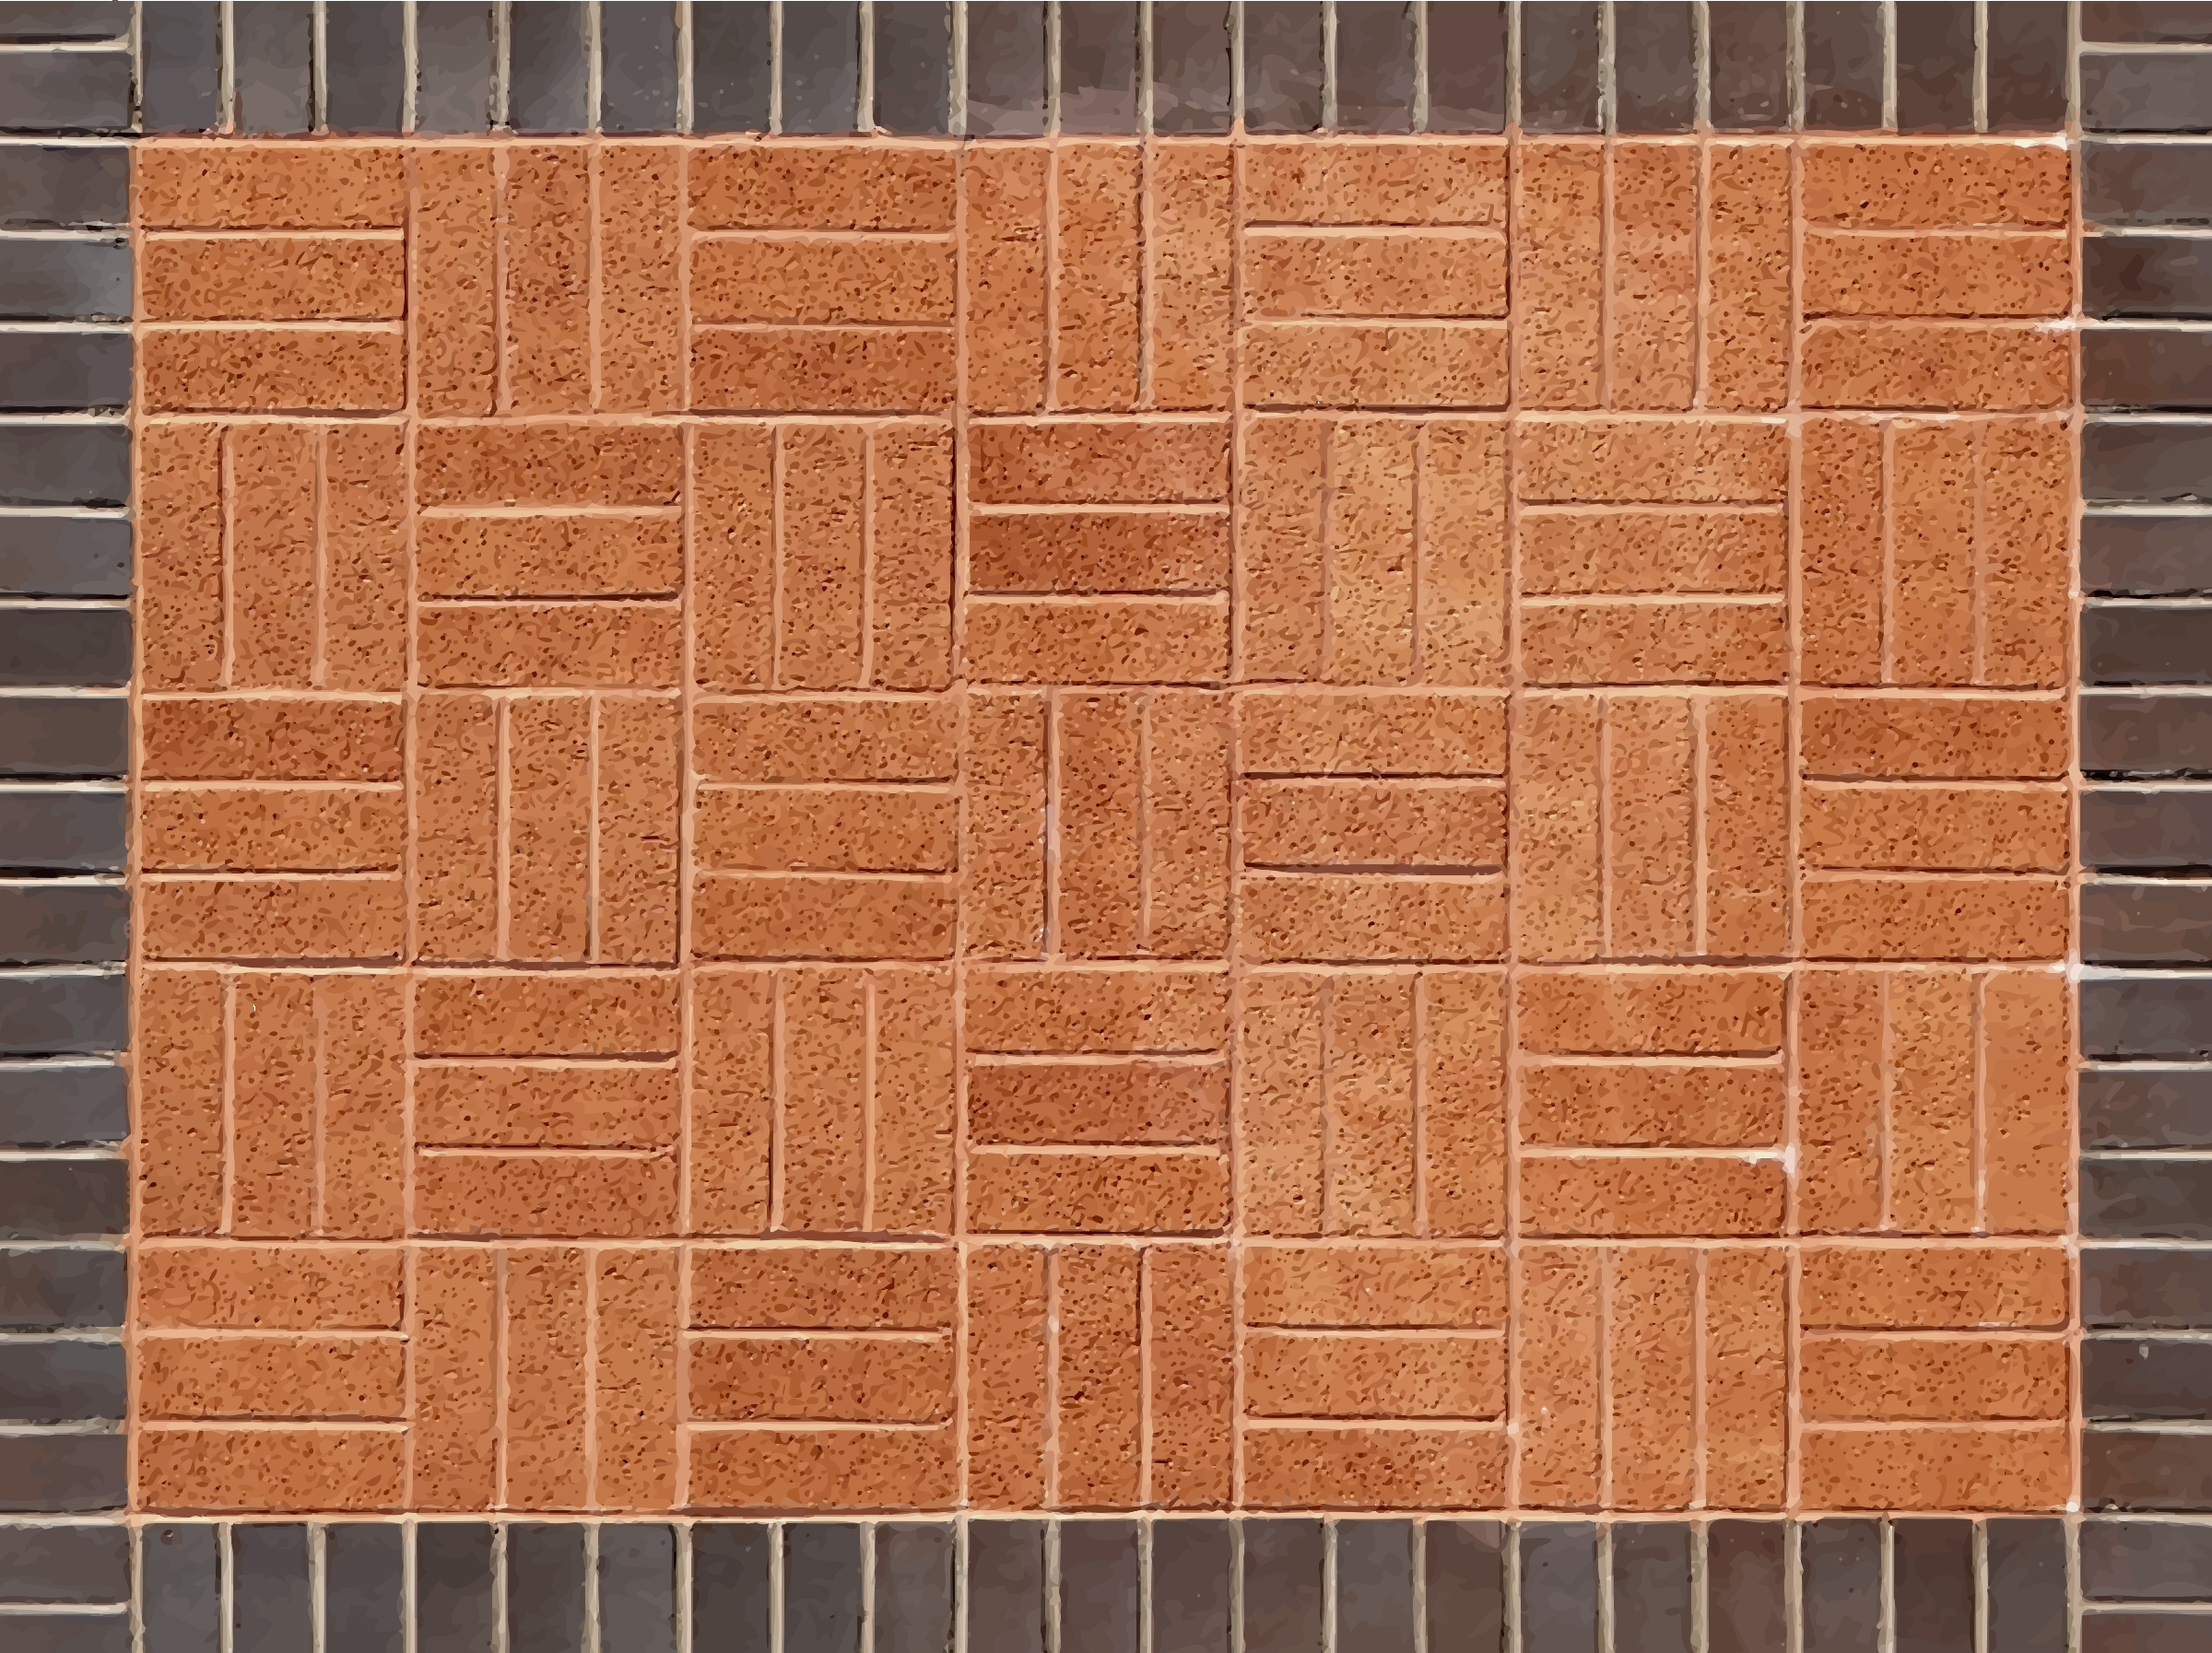 Brick pattern 2 by Firkin